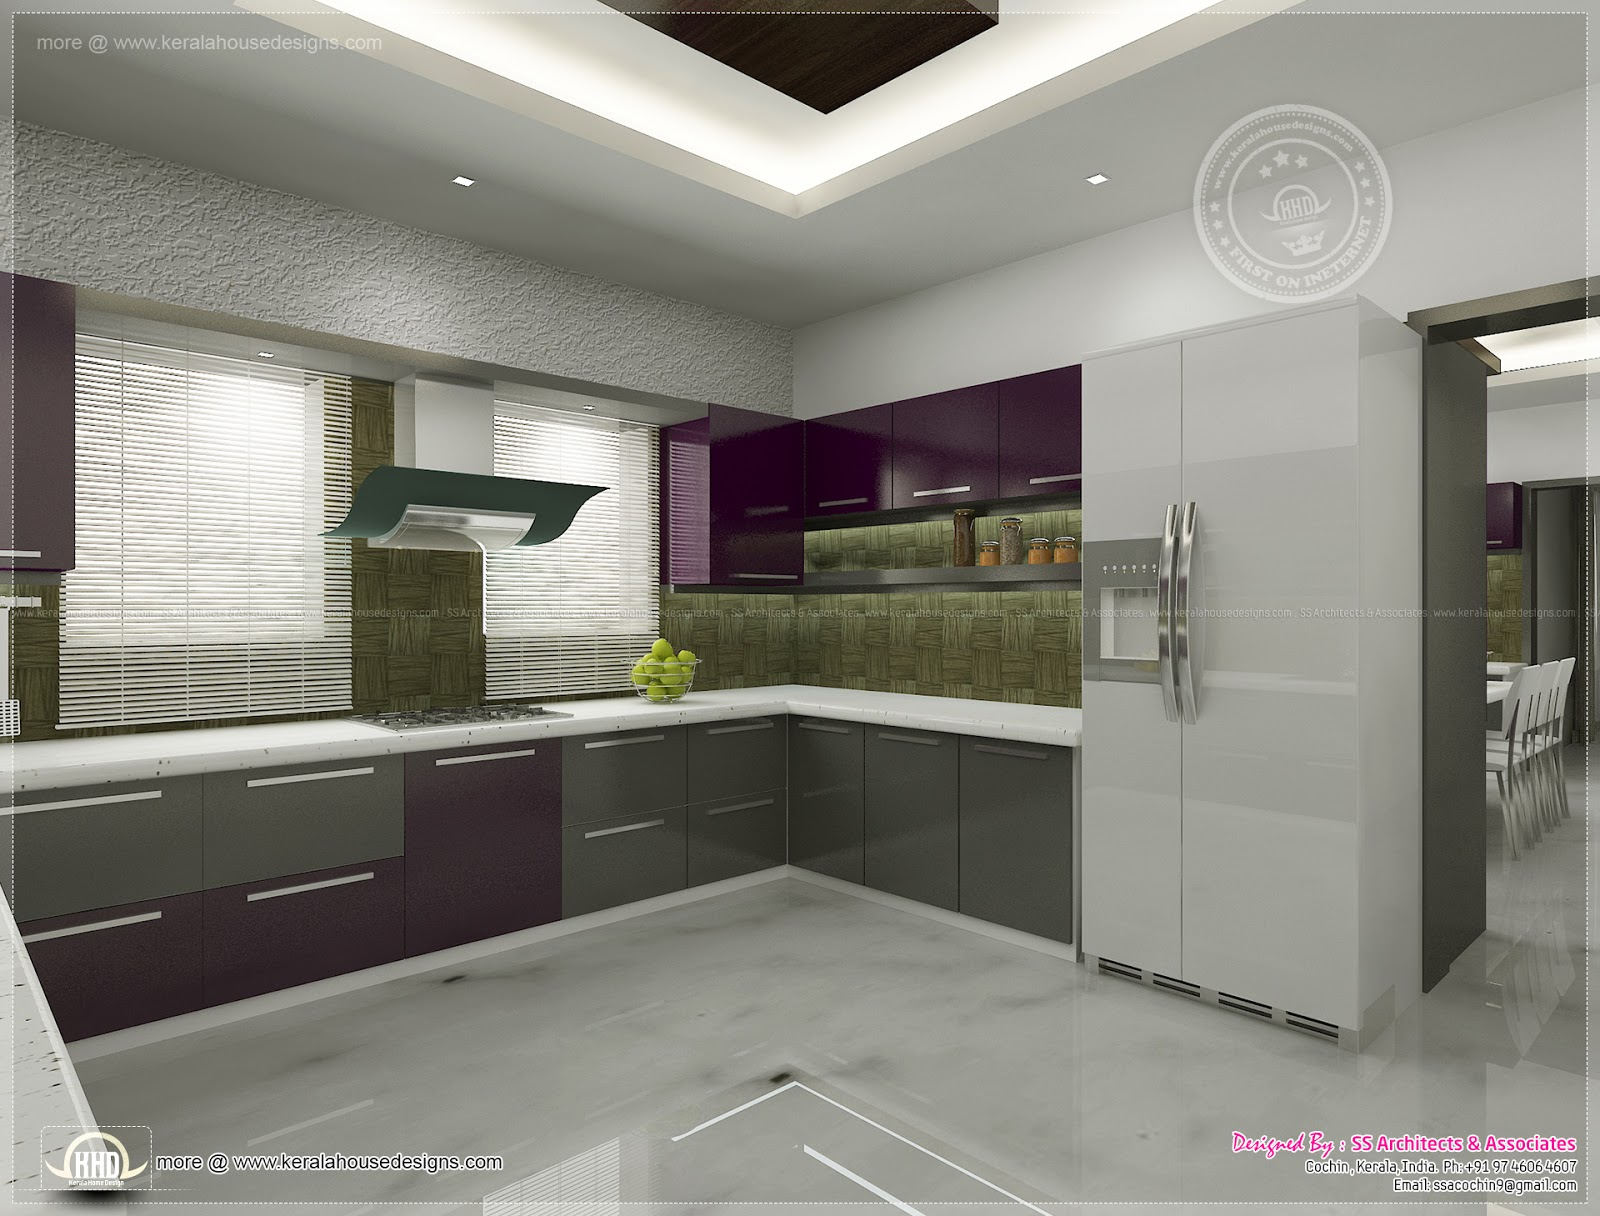 Kitchen interior views by ss architects cochin home for Interior decoration pictures kitchen indian